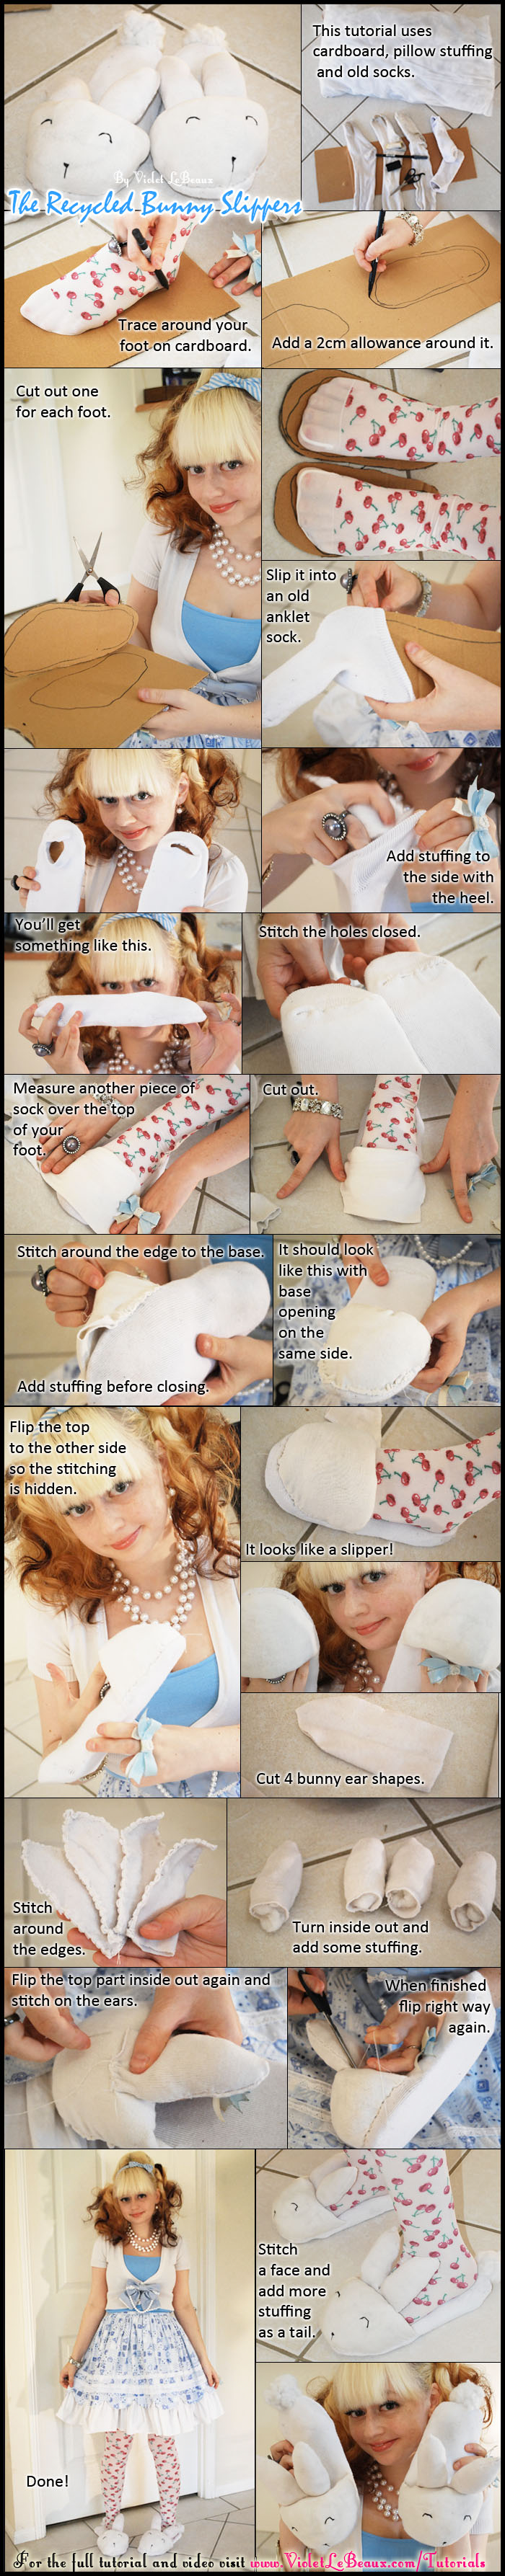 A simple tutorial on how to make bunny slippers out of old socks and pillows.